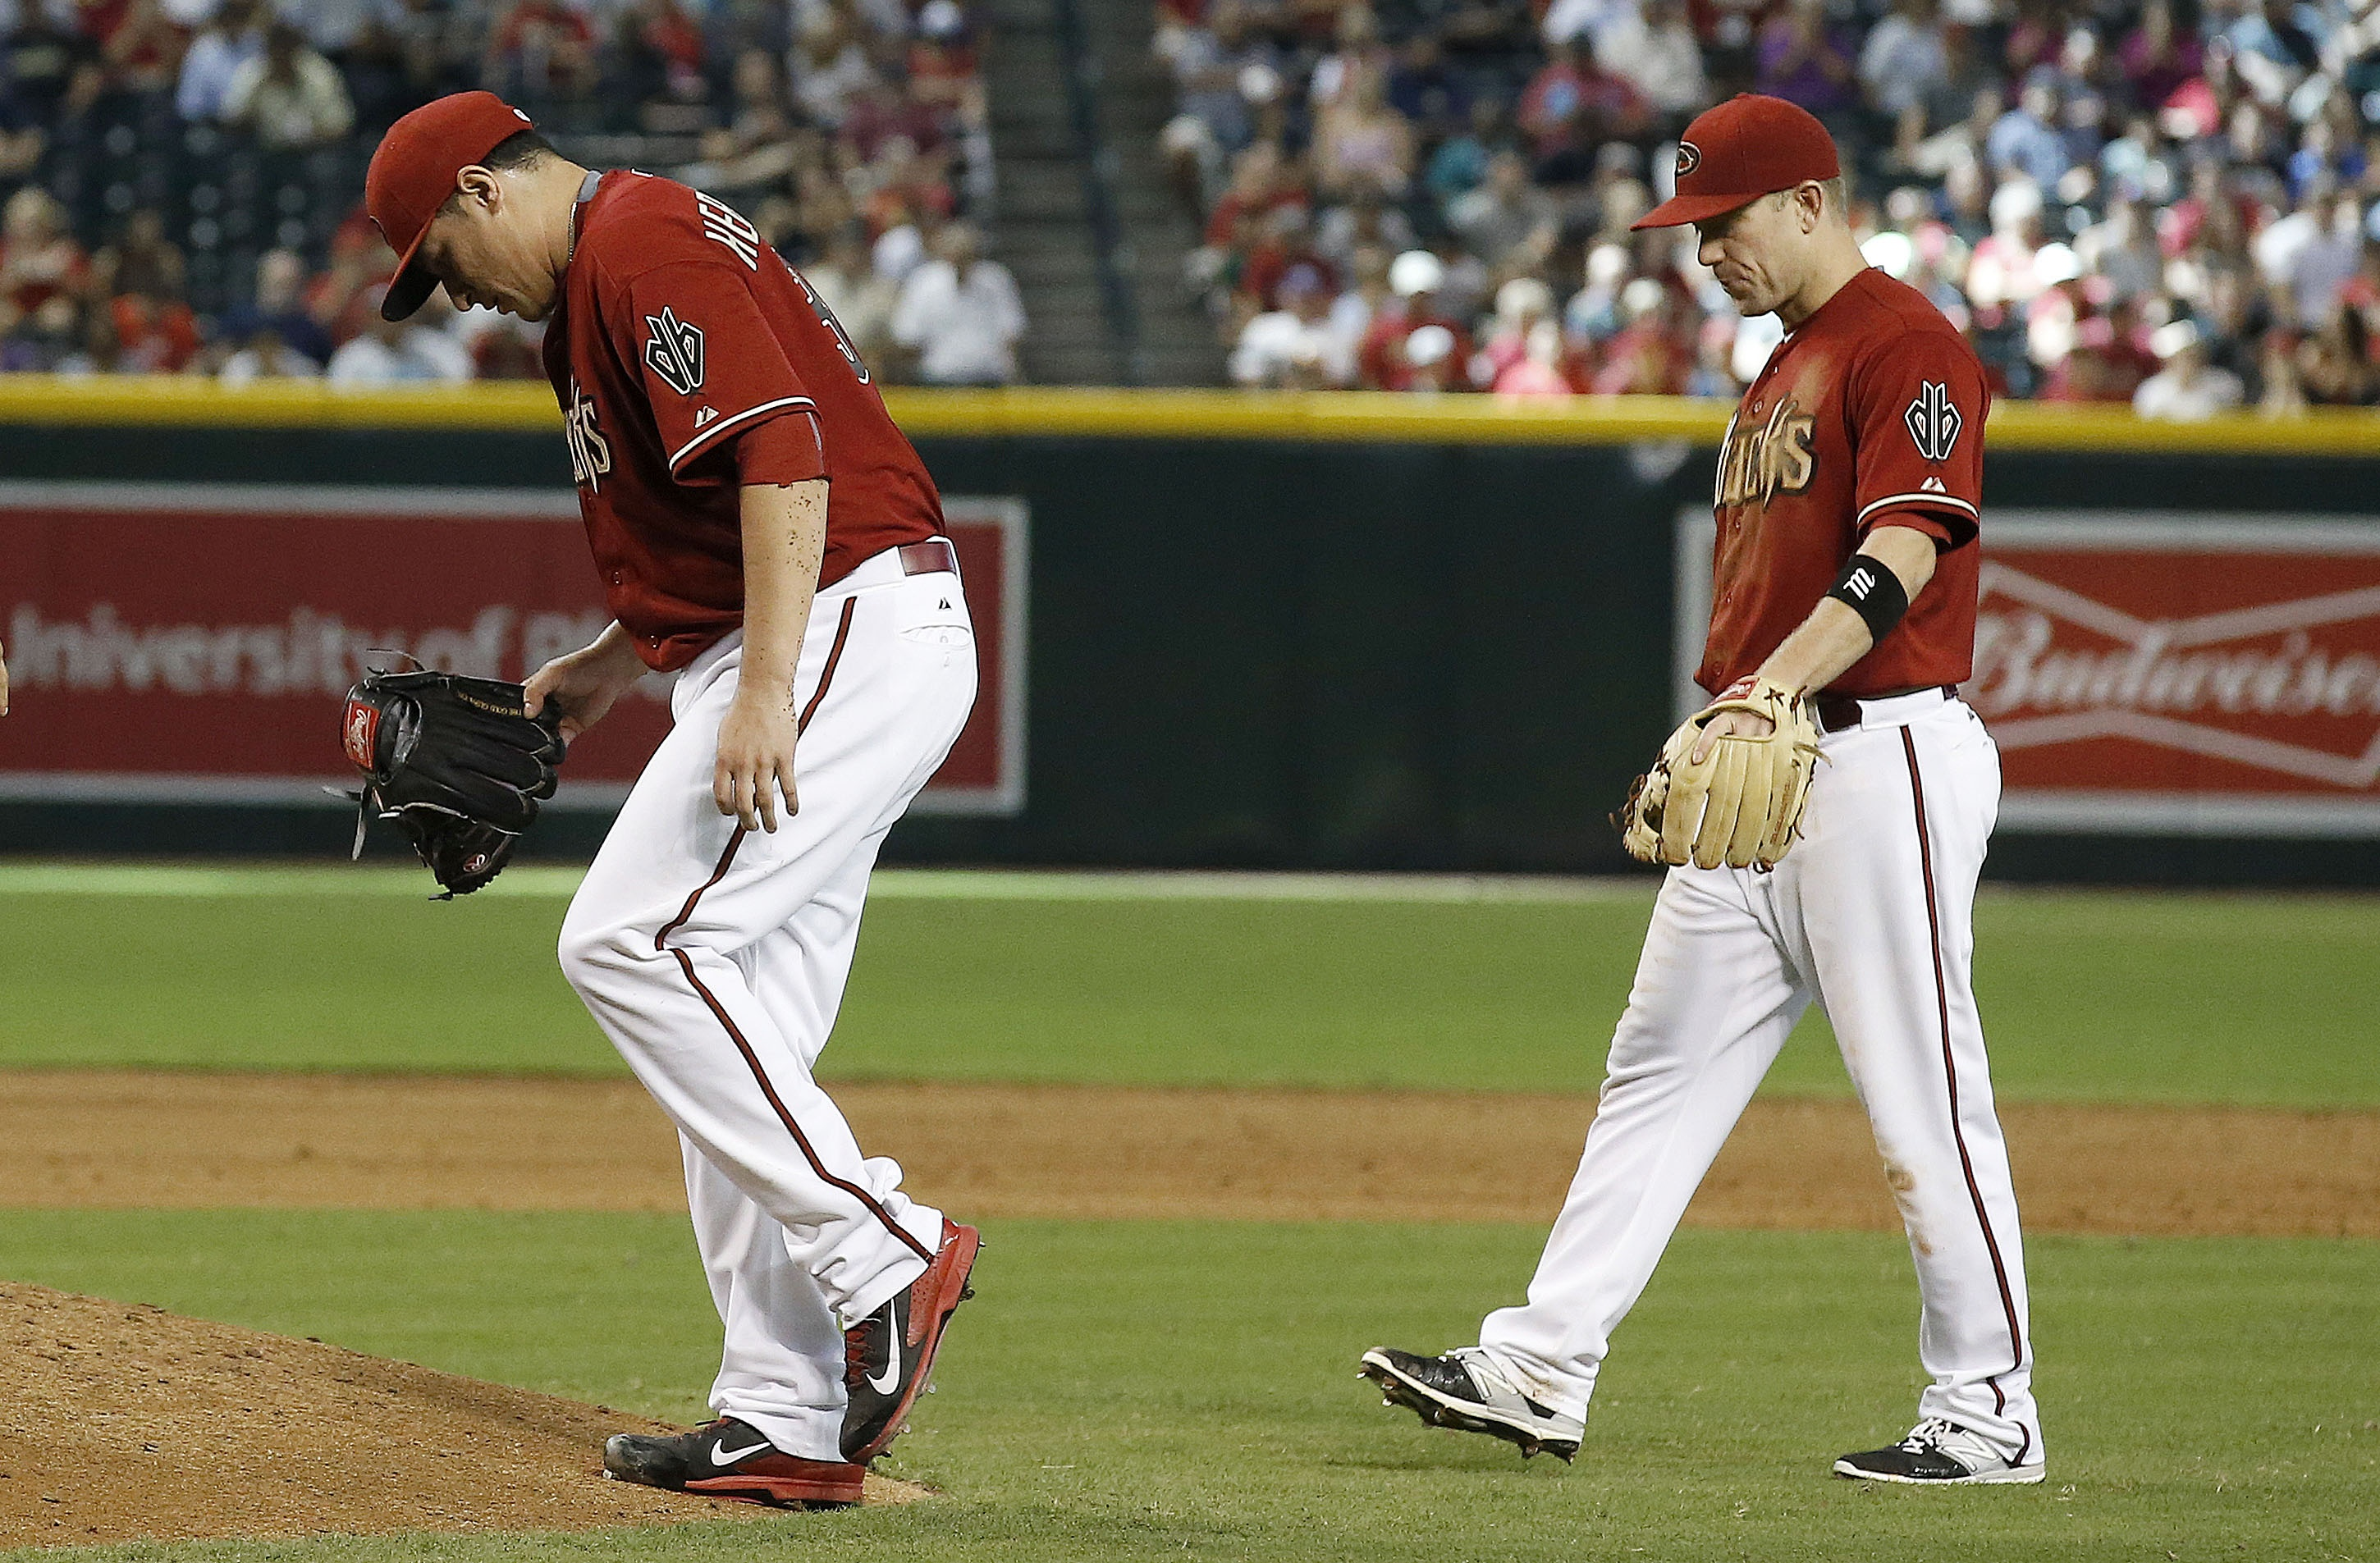 Arizona Diamondbacks' Aaron Hill, right, walks in to check on pitcher David Hernandez, left, who was hit on the leg by a line drive by Philadelphia Phillies' Andres Blanco during the sixth inning of a baseball game Wednesday, Aug. 12, 2015, in Phoenix. He